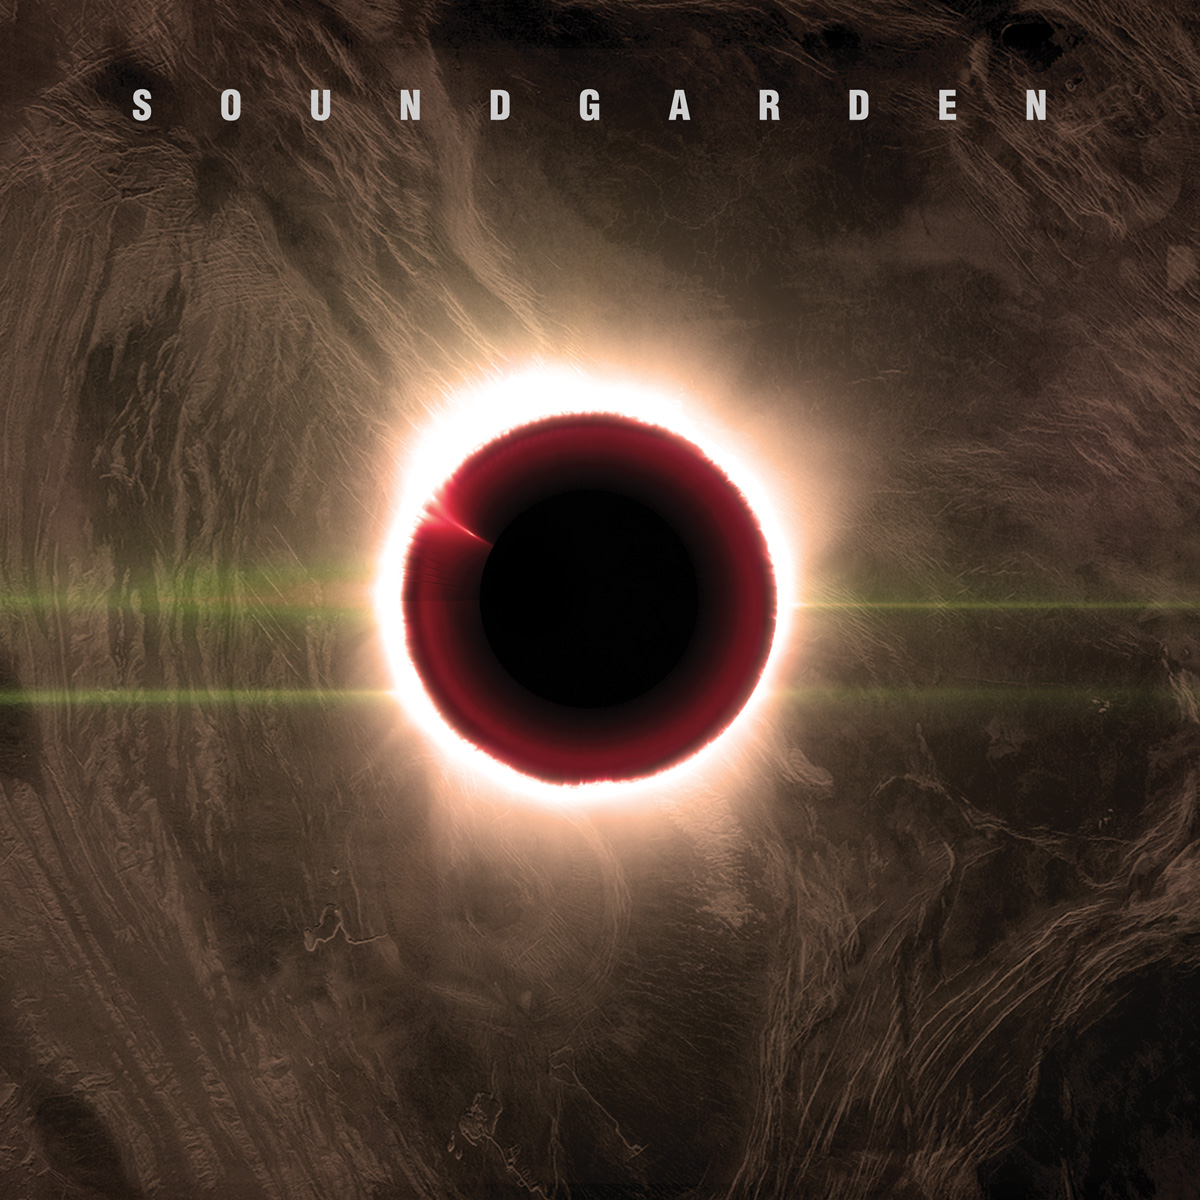 Soundgarden - Superunknown - The Singles [RSD 2014]